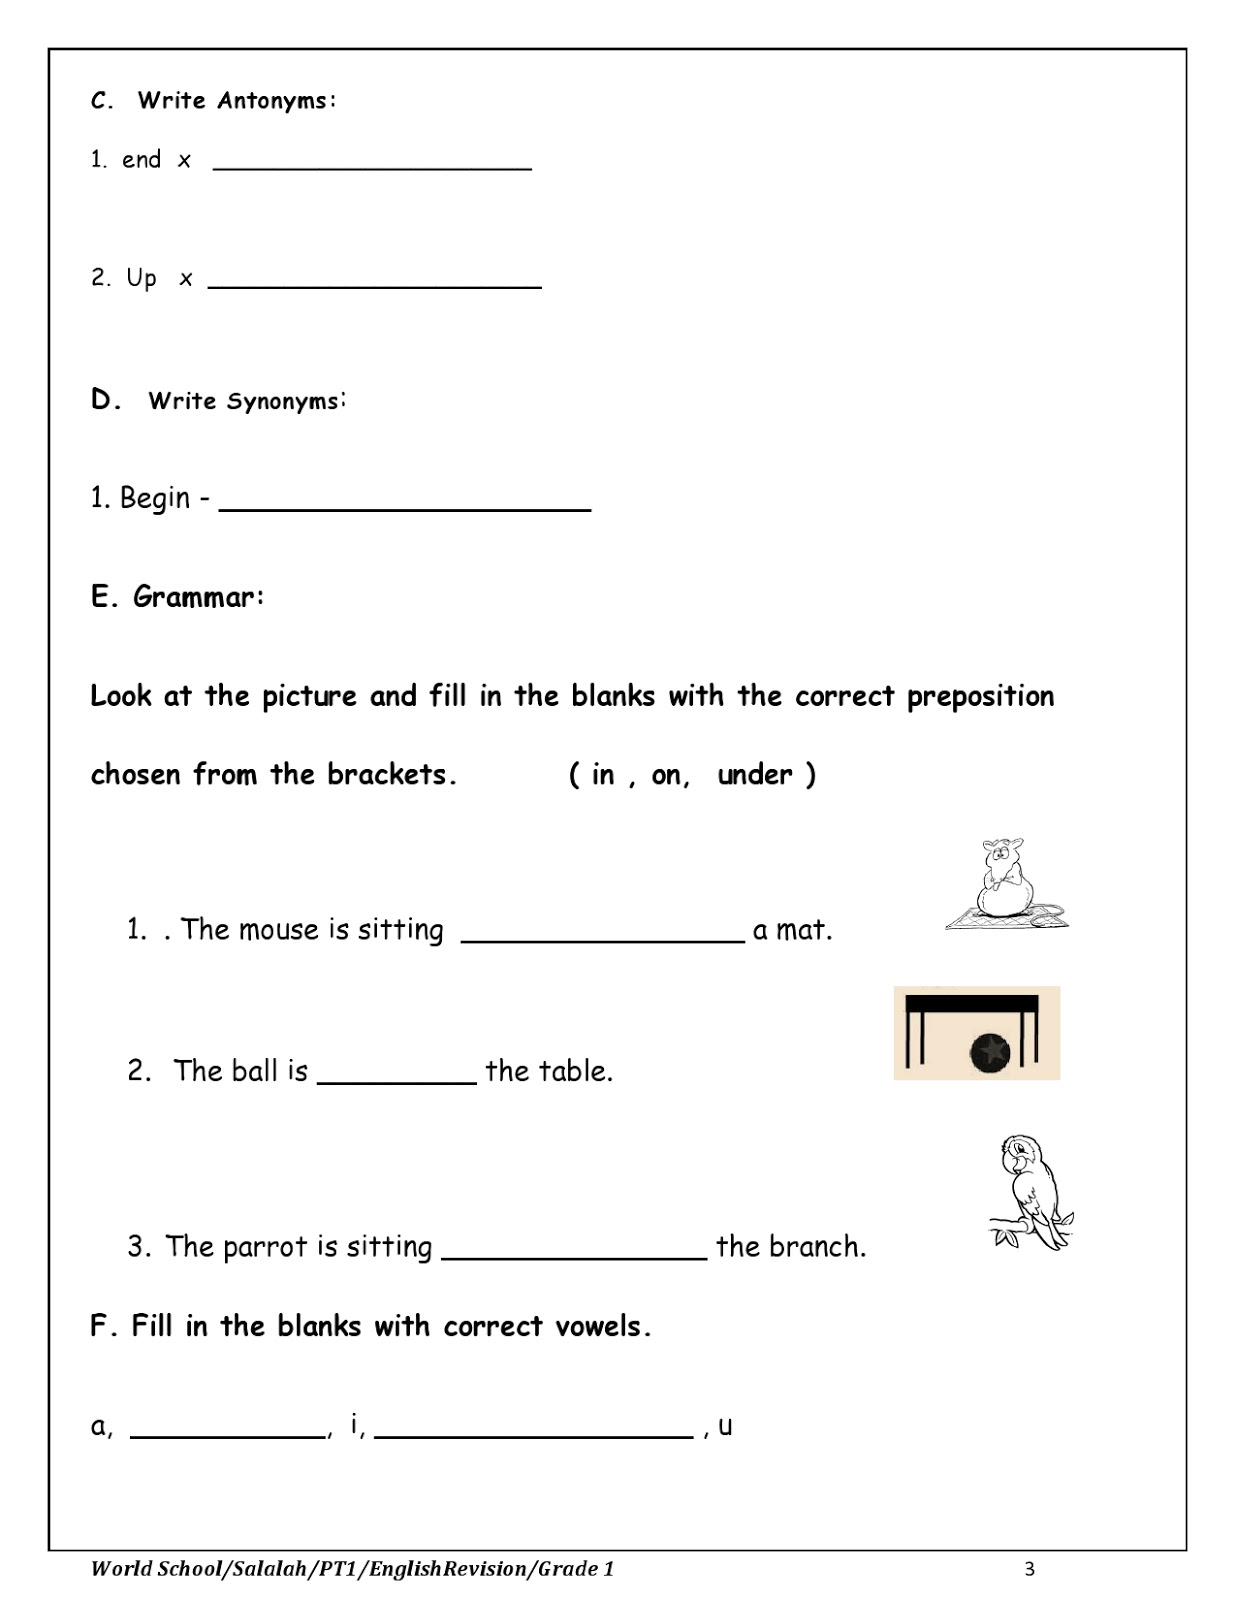 WORLD SCHOOL OMAN: Revision Worksheet for Grade 1 as on 03-10-2019 [ 1600 x 1236 Pixel ]